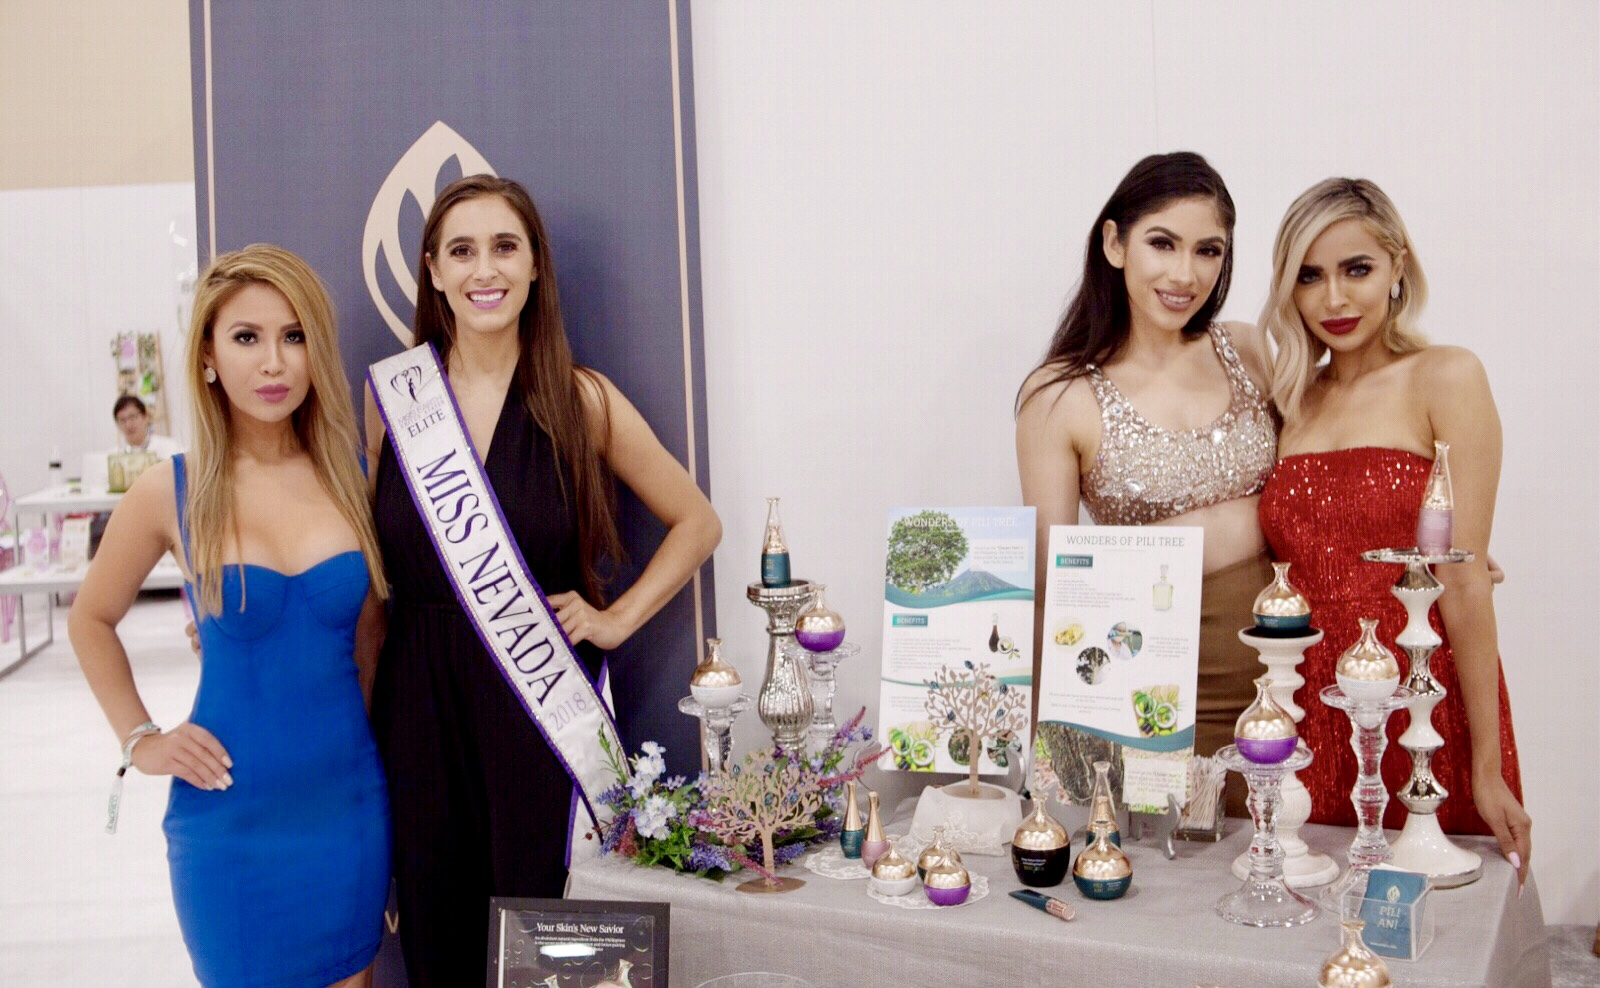 Pictured here with  PILI ANI , a luxurious skin care brand,  Y  von Nguyen ,  Jody Marie ,  Annakaren Alderete  and  Nida Maqsood . Photo courtesy of  Ray Pinili .